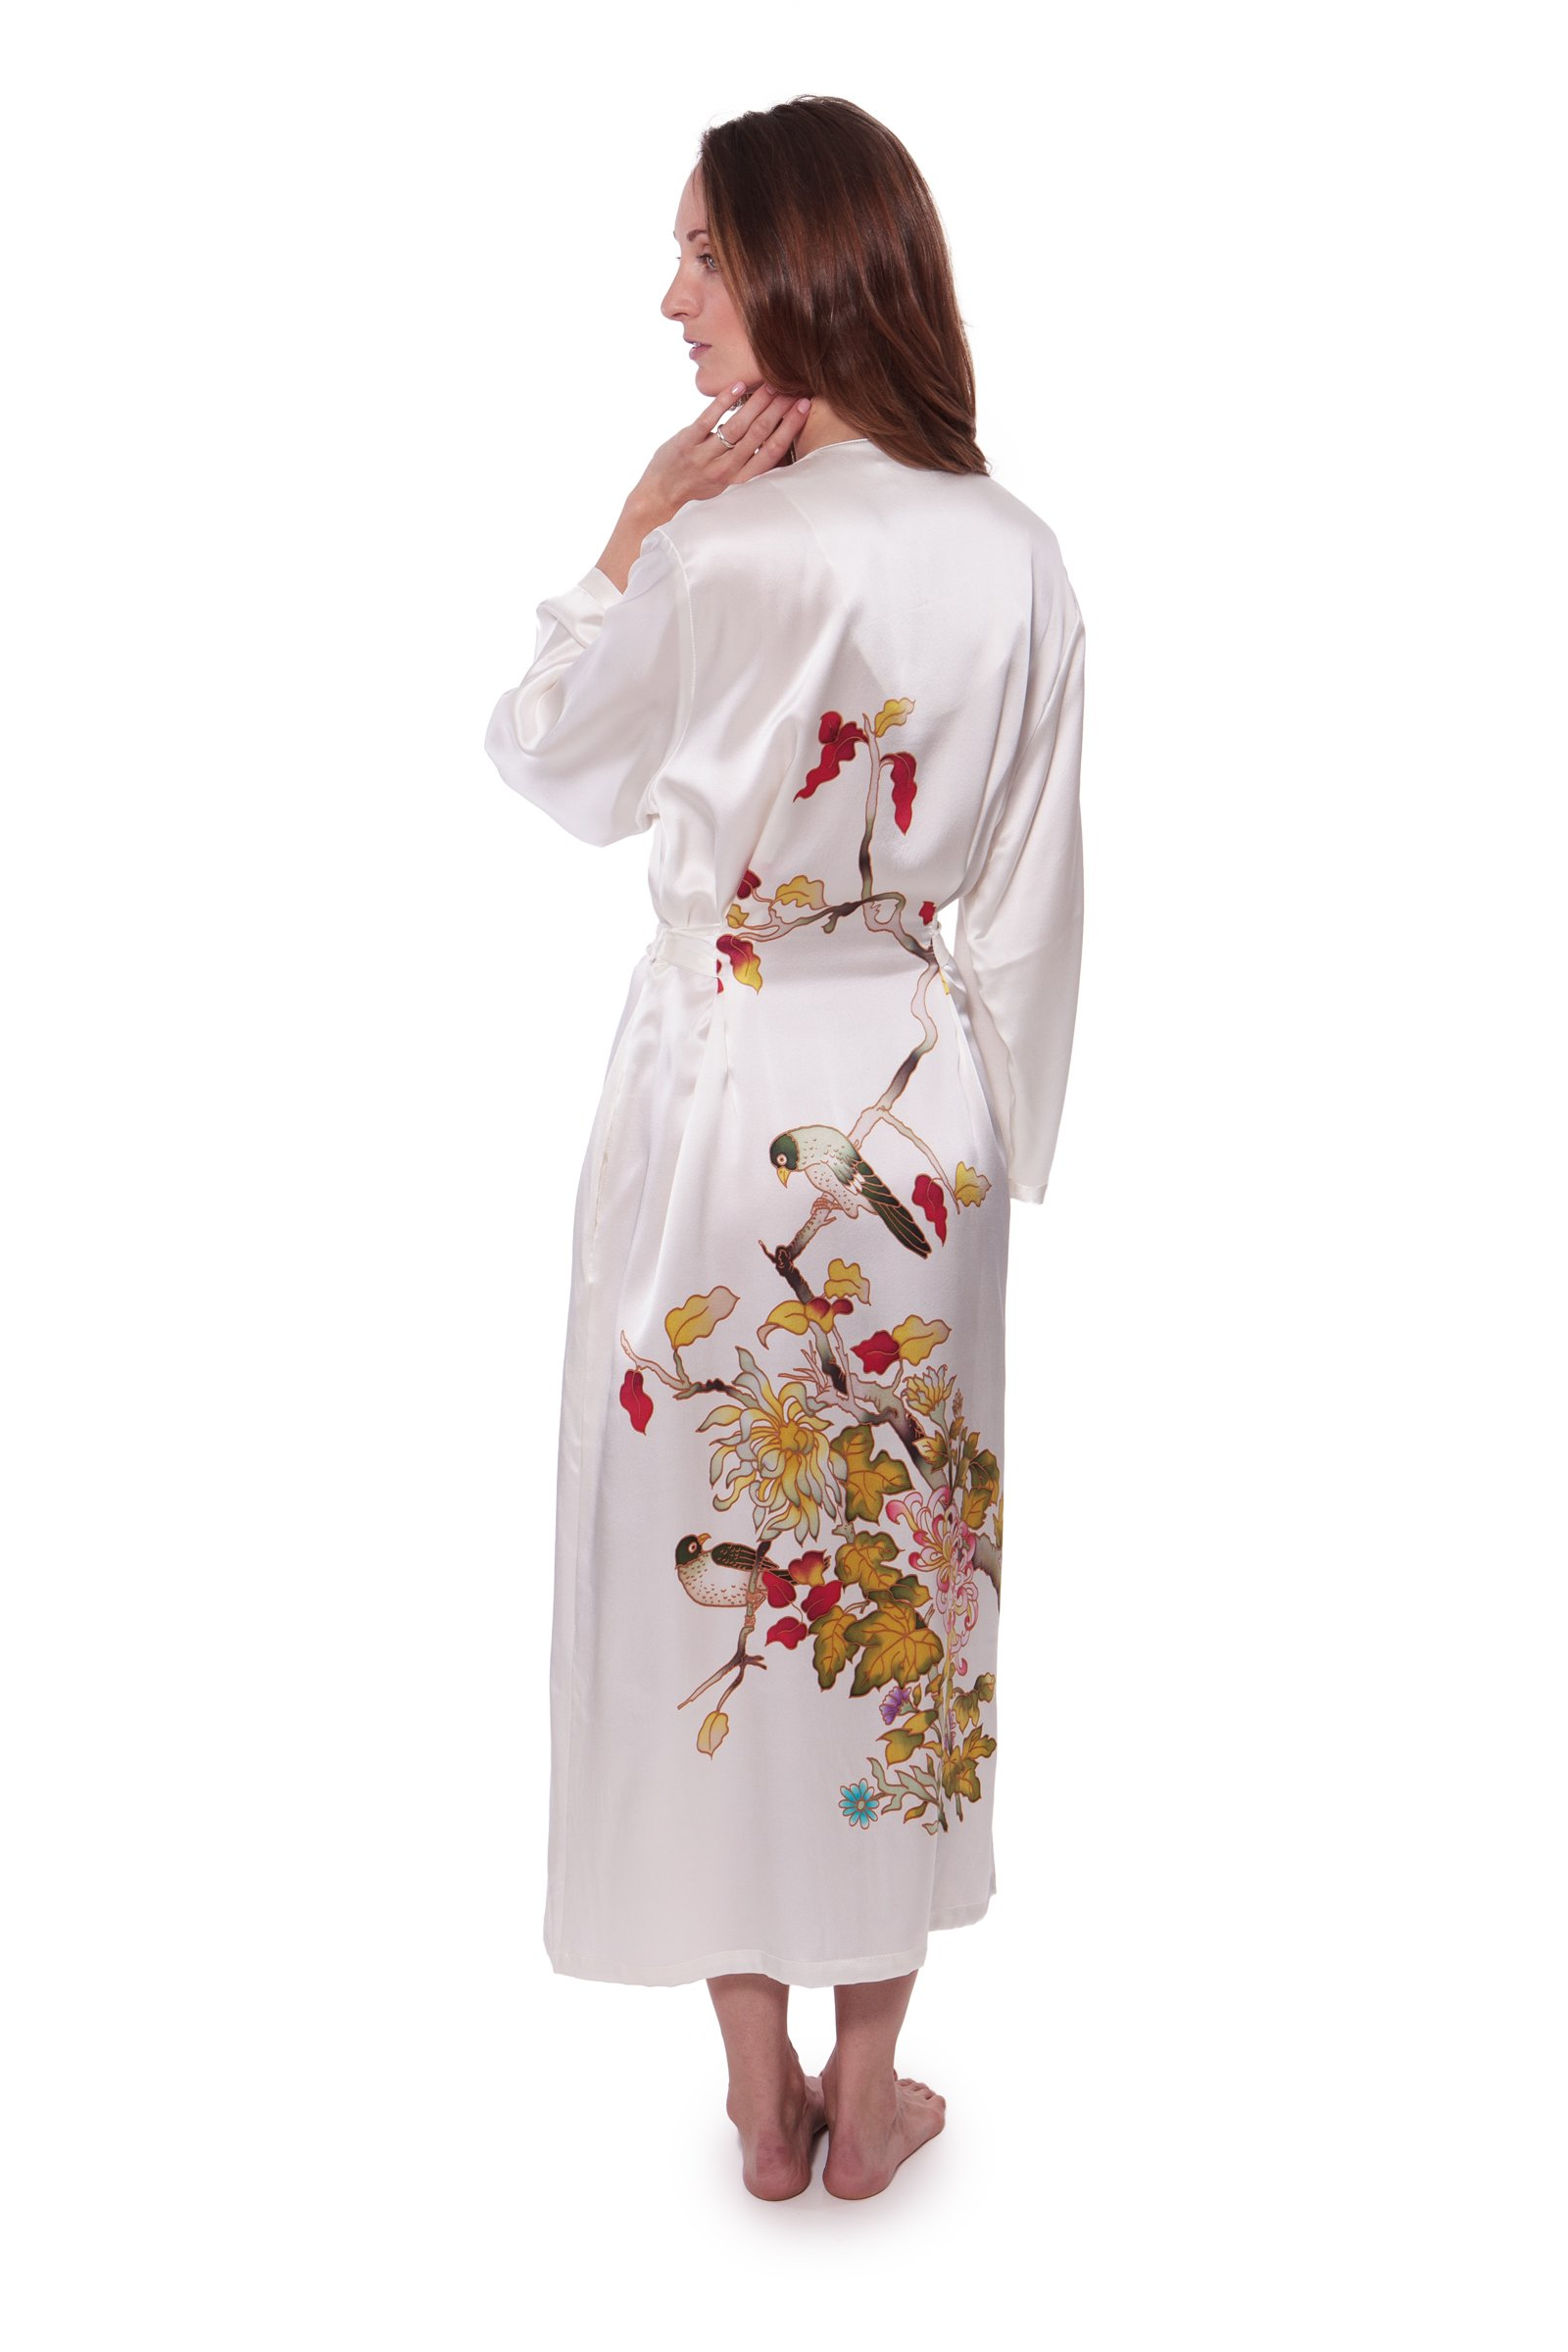 TexereSilk Women's Hand Painted Silk Robe (Natural White, Small/Medium) Perfect Gifts for Mom Sister Daughter WS0103-NWH-SM